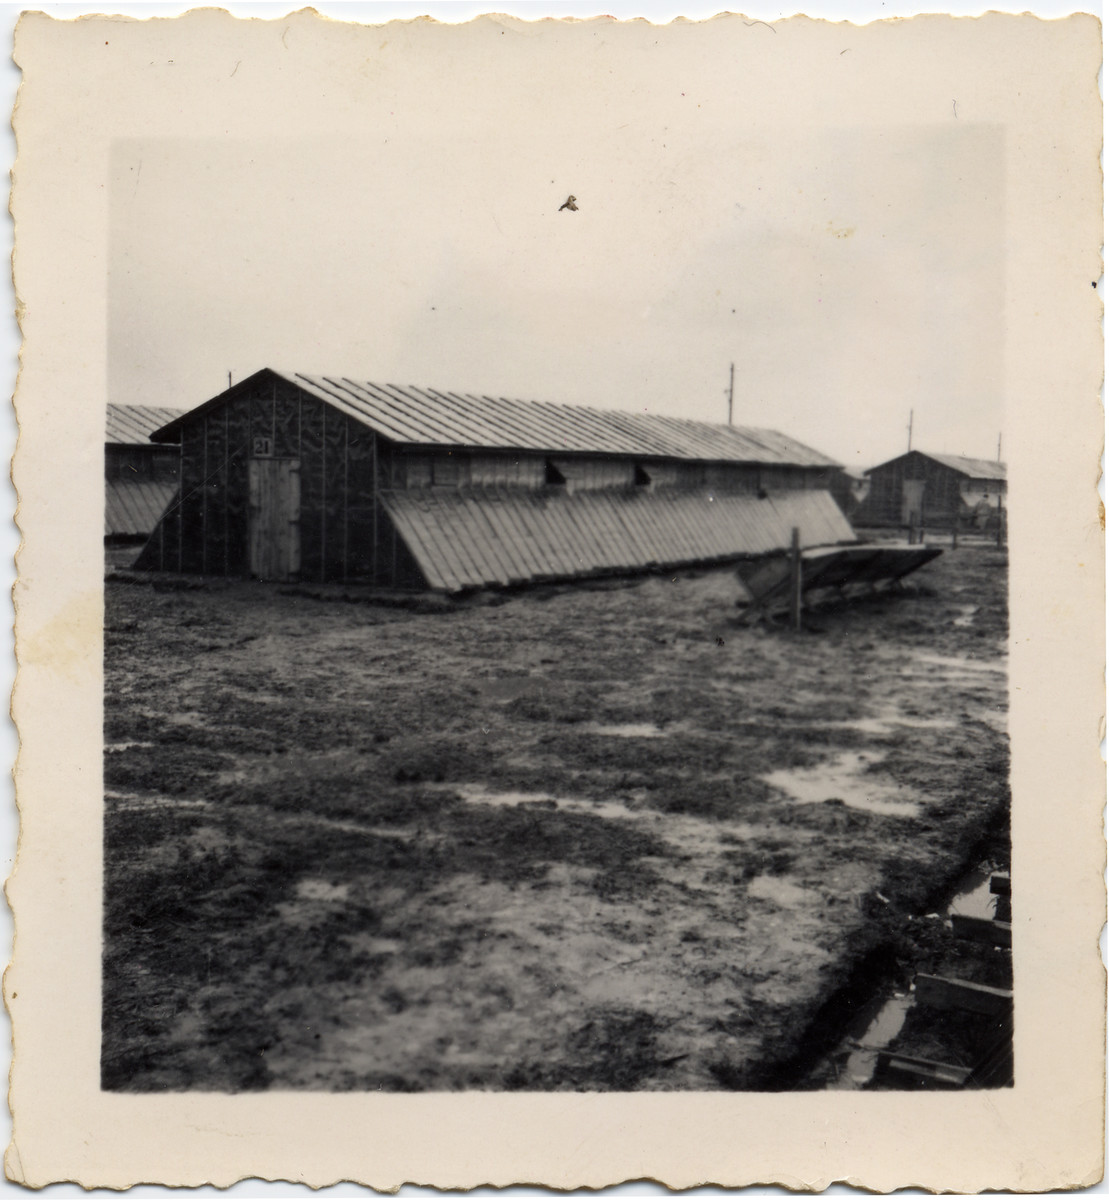 View of a barrack in the Gurs internment camp.